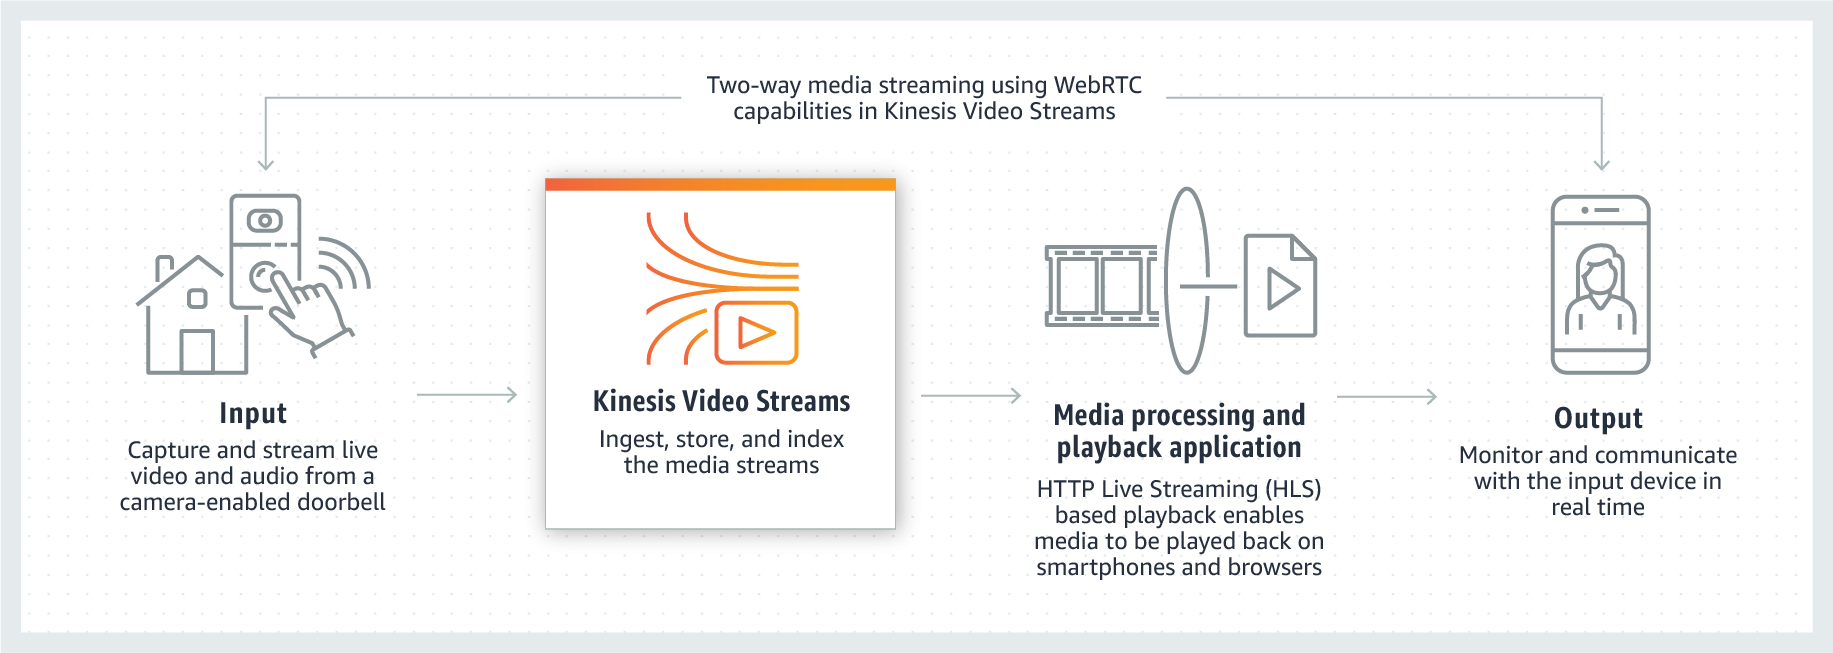 Amazon Kinesis Video Streams smart home use case